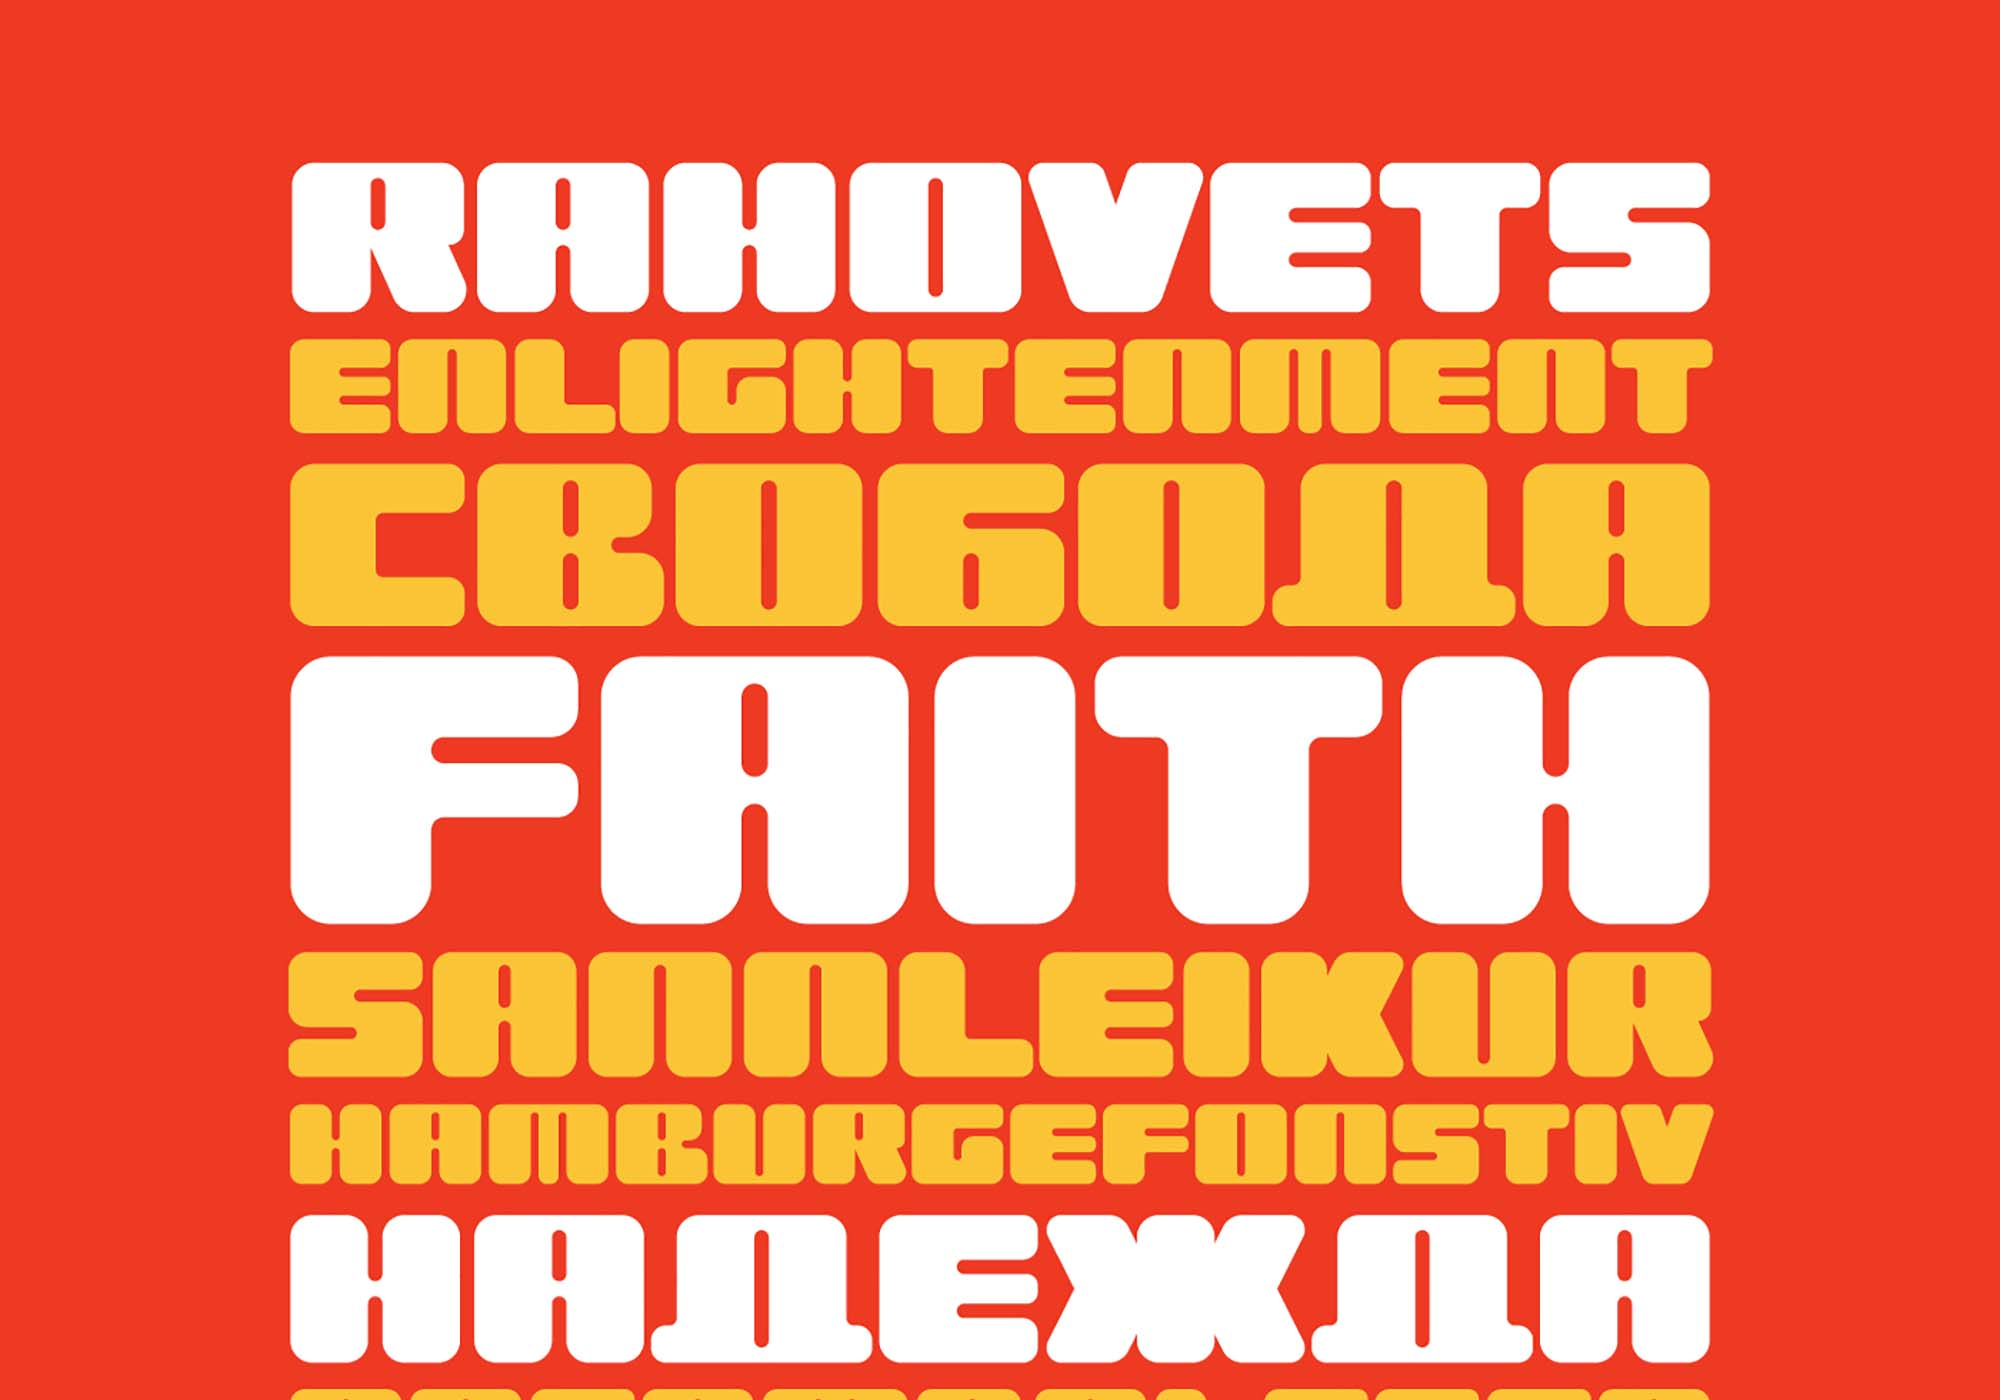 Rahovets Retro Display Font 3